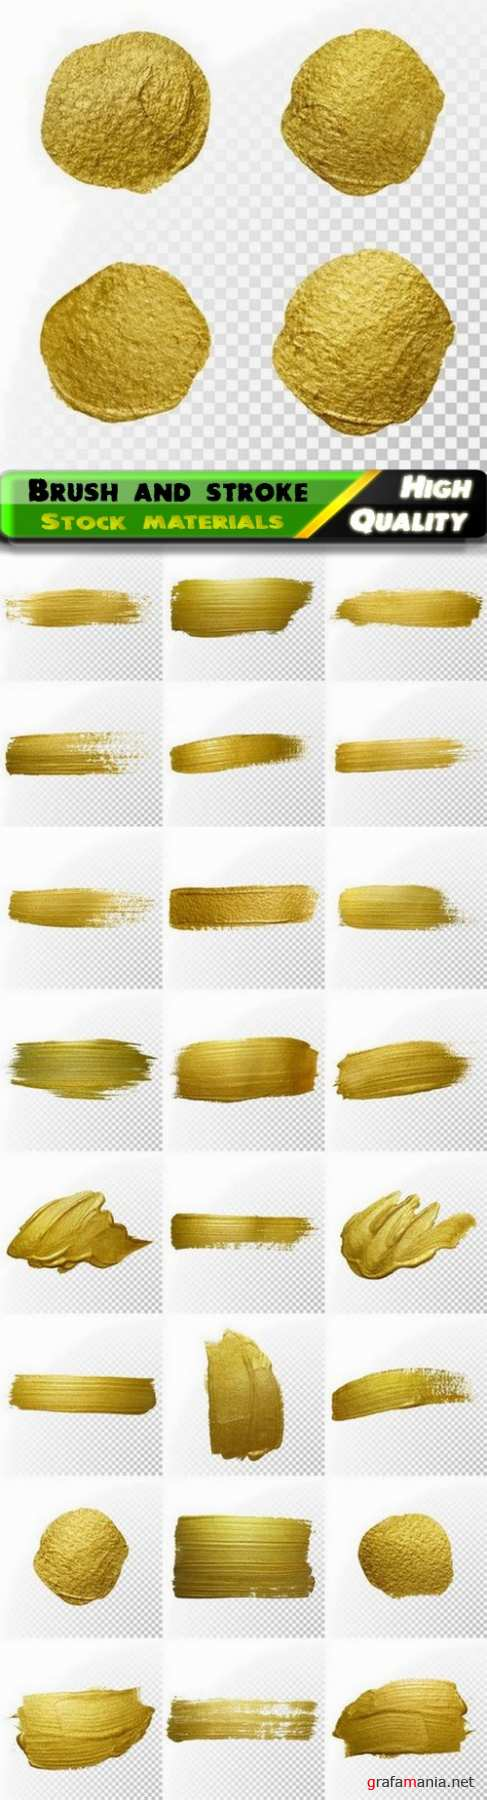 Gold paint splatter blot and brush and smear stroke stain - 25 Eps